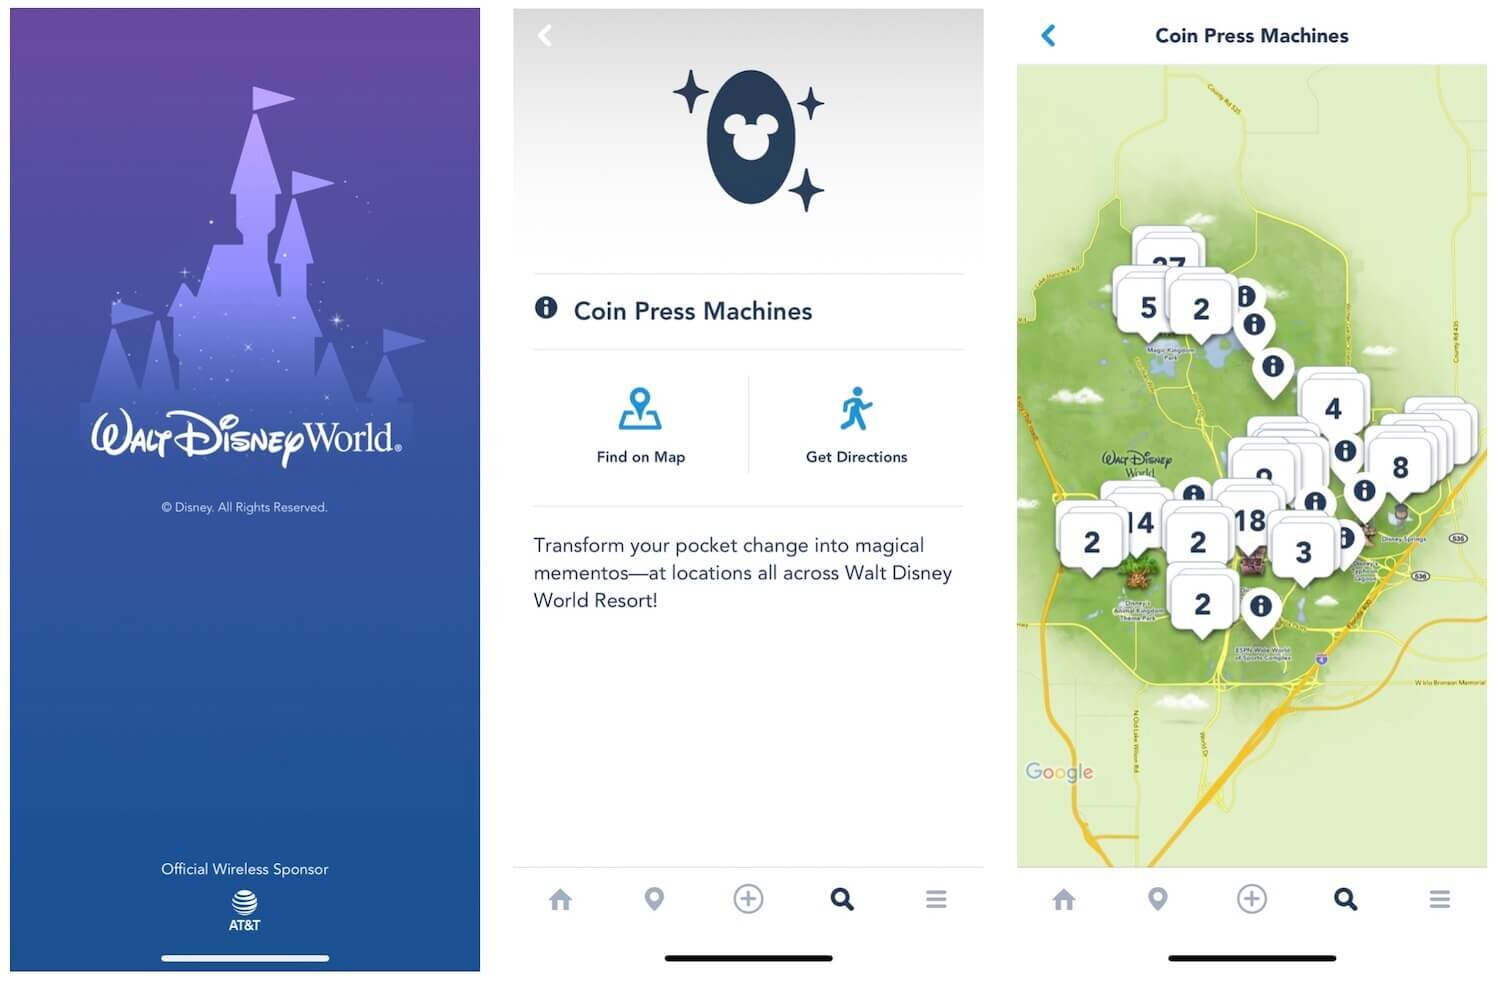 My Disney Experience App Search For Coin Press Locations